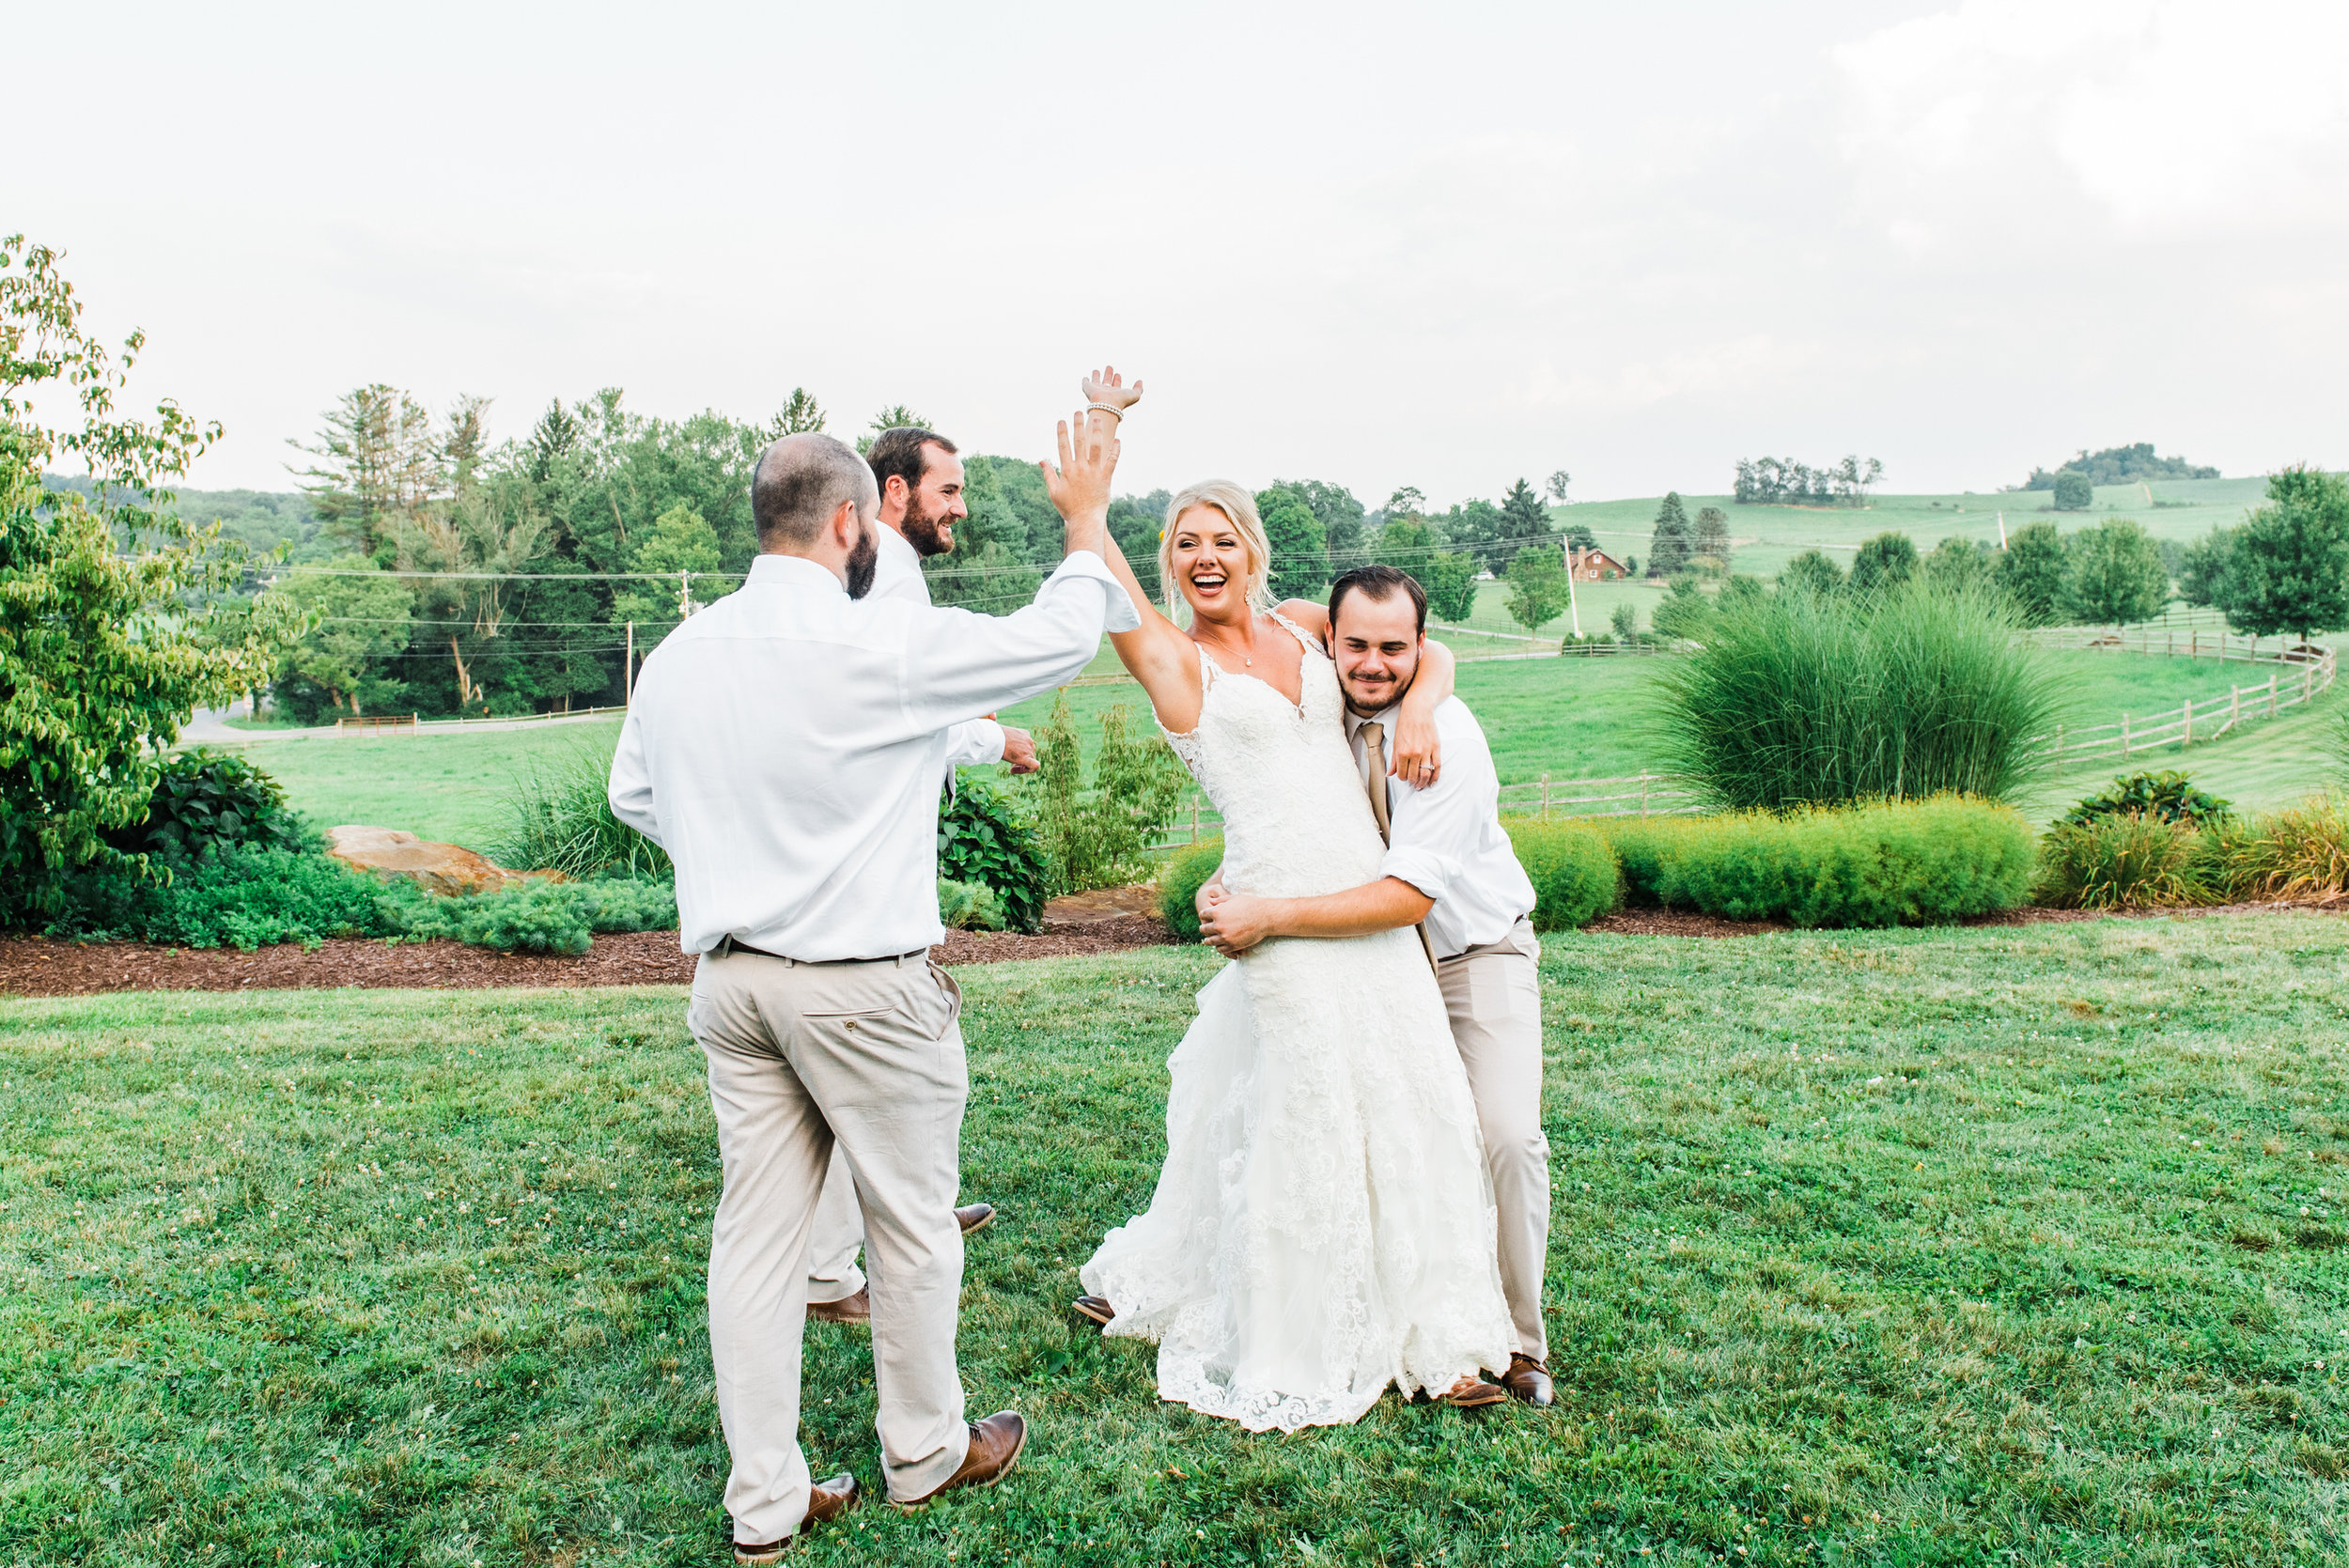 bride highfives